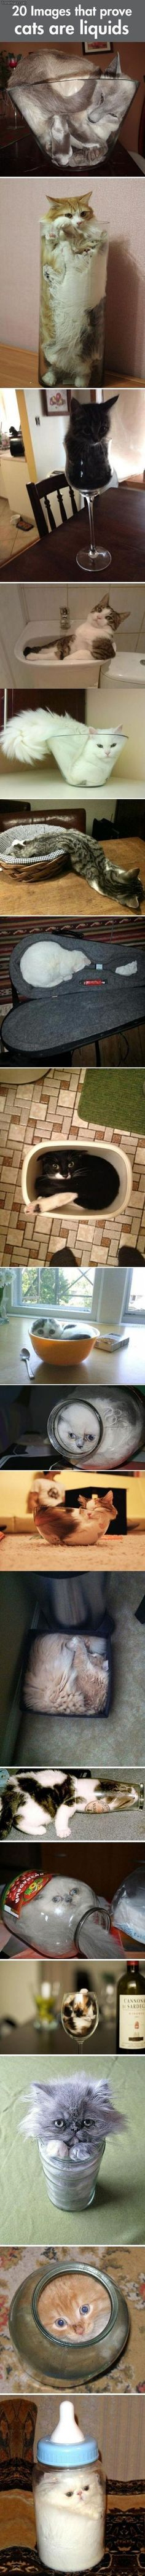 20 Images that prove cats are liquids